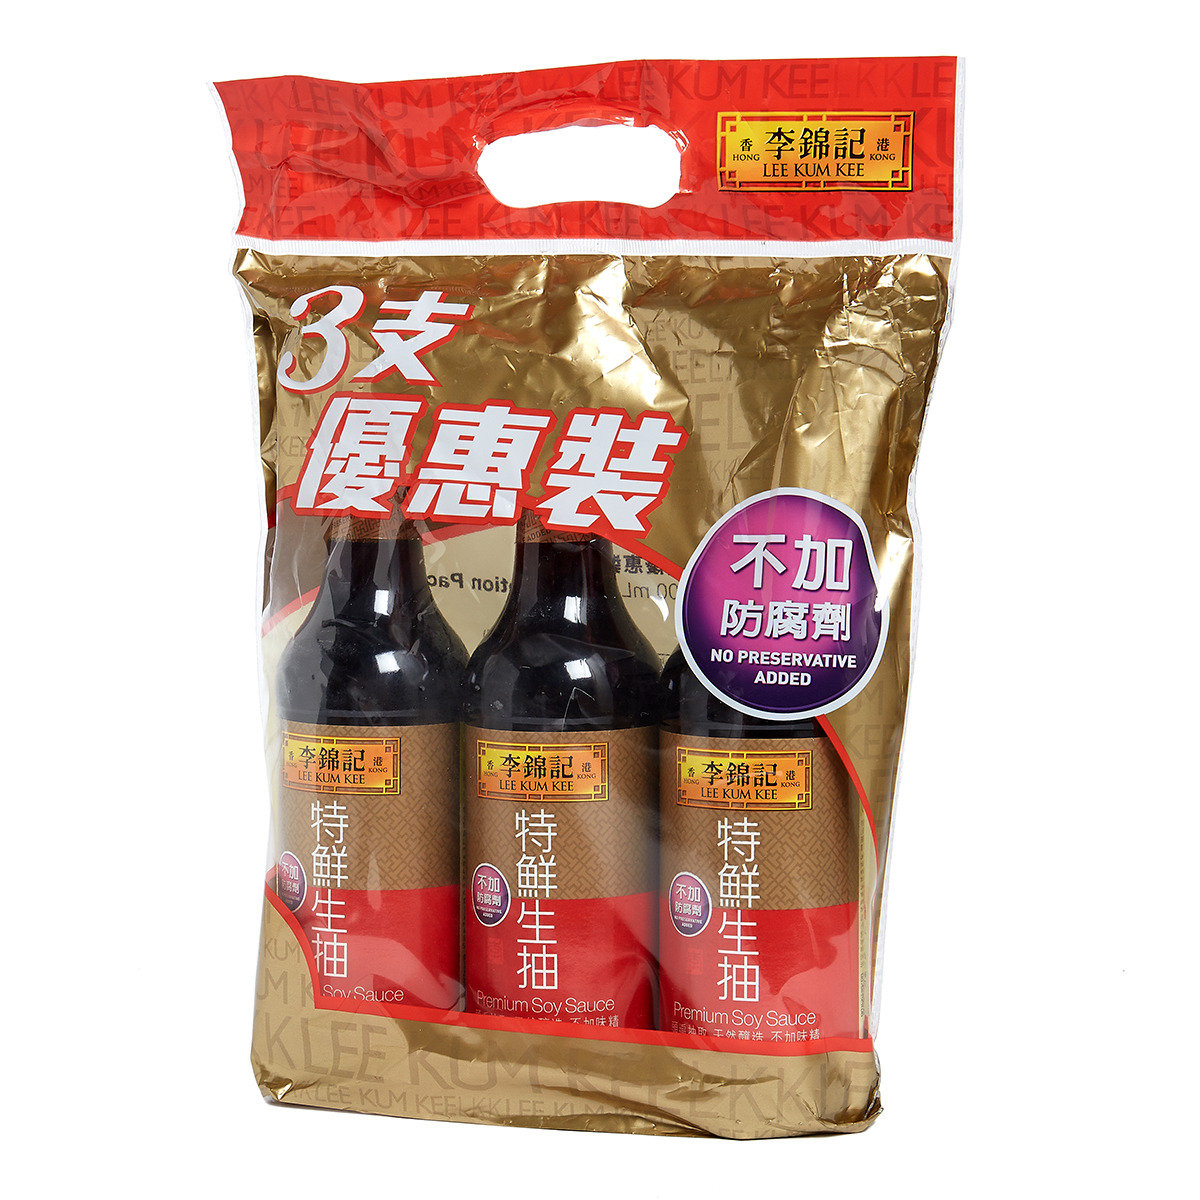 Premium Soy Sauce (Value Pack)